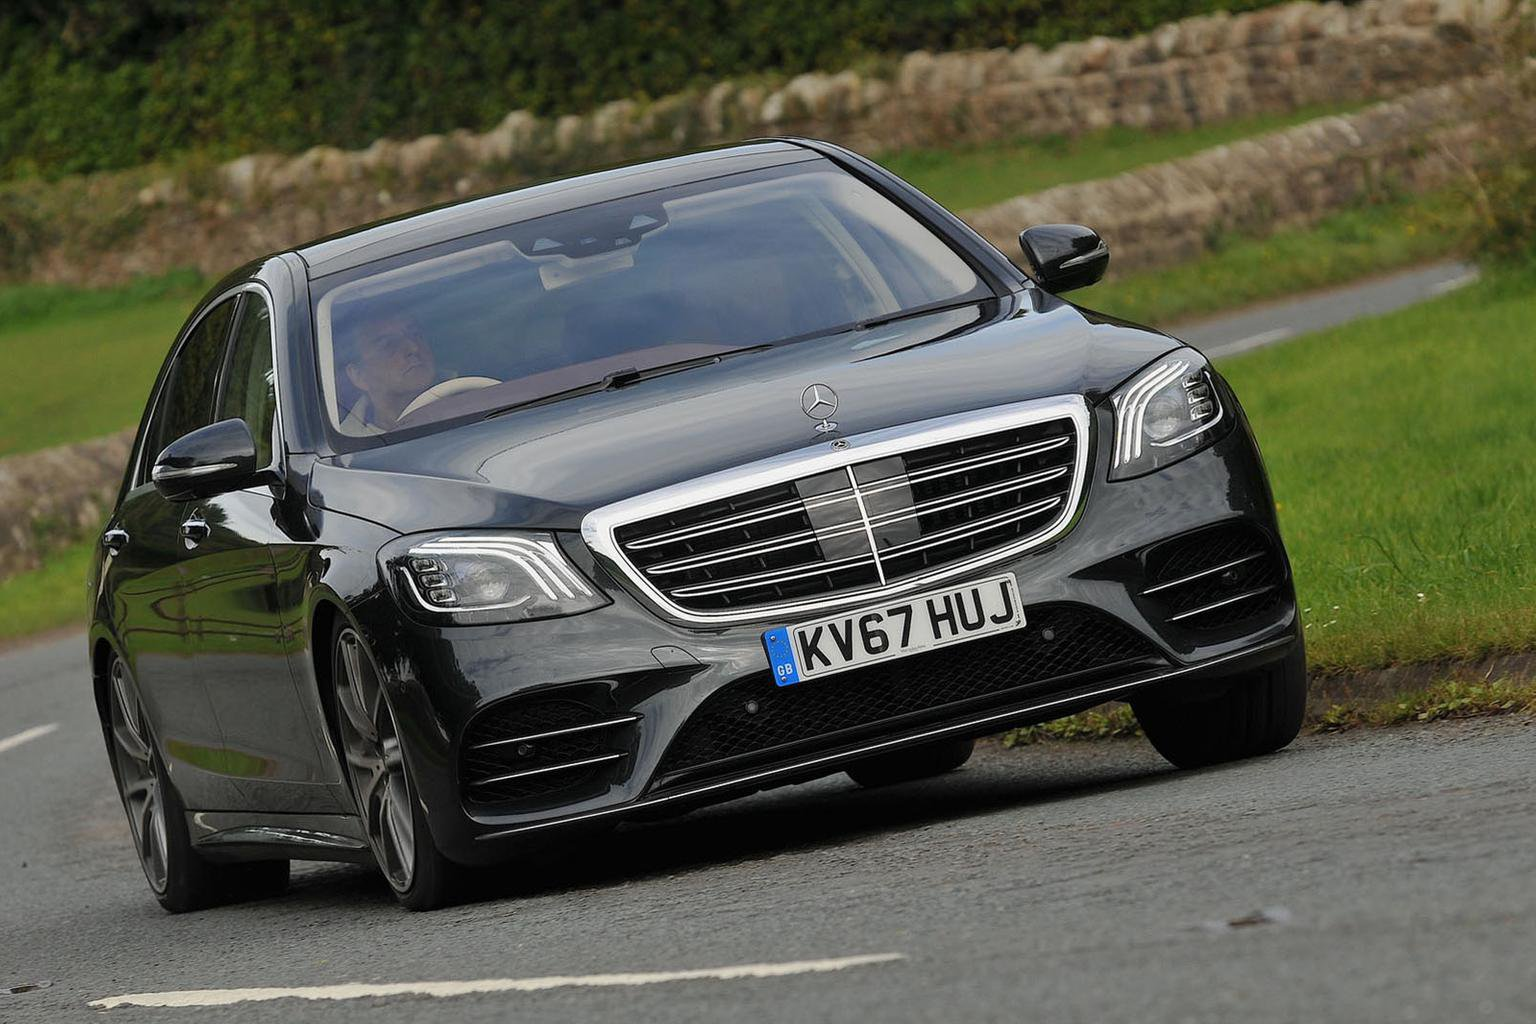 MERCEDES-BENZ S CLASS SALOON SPECIAL EDITIONS